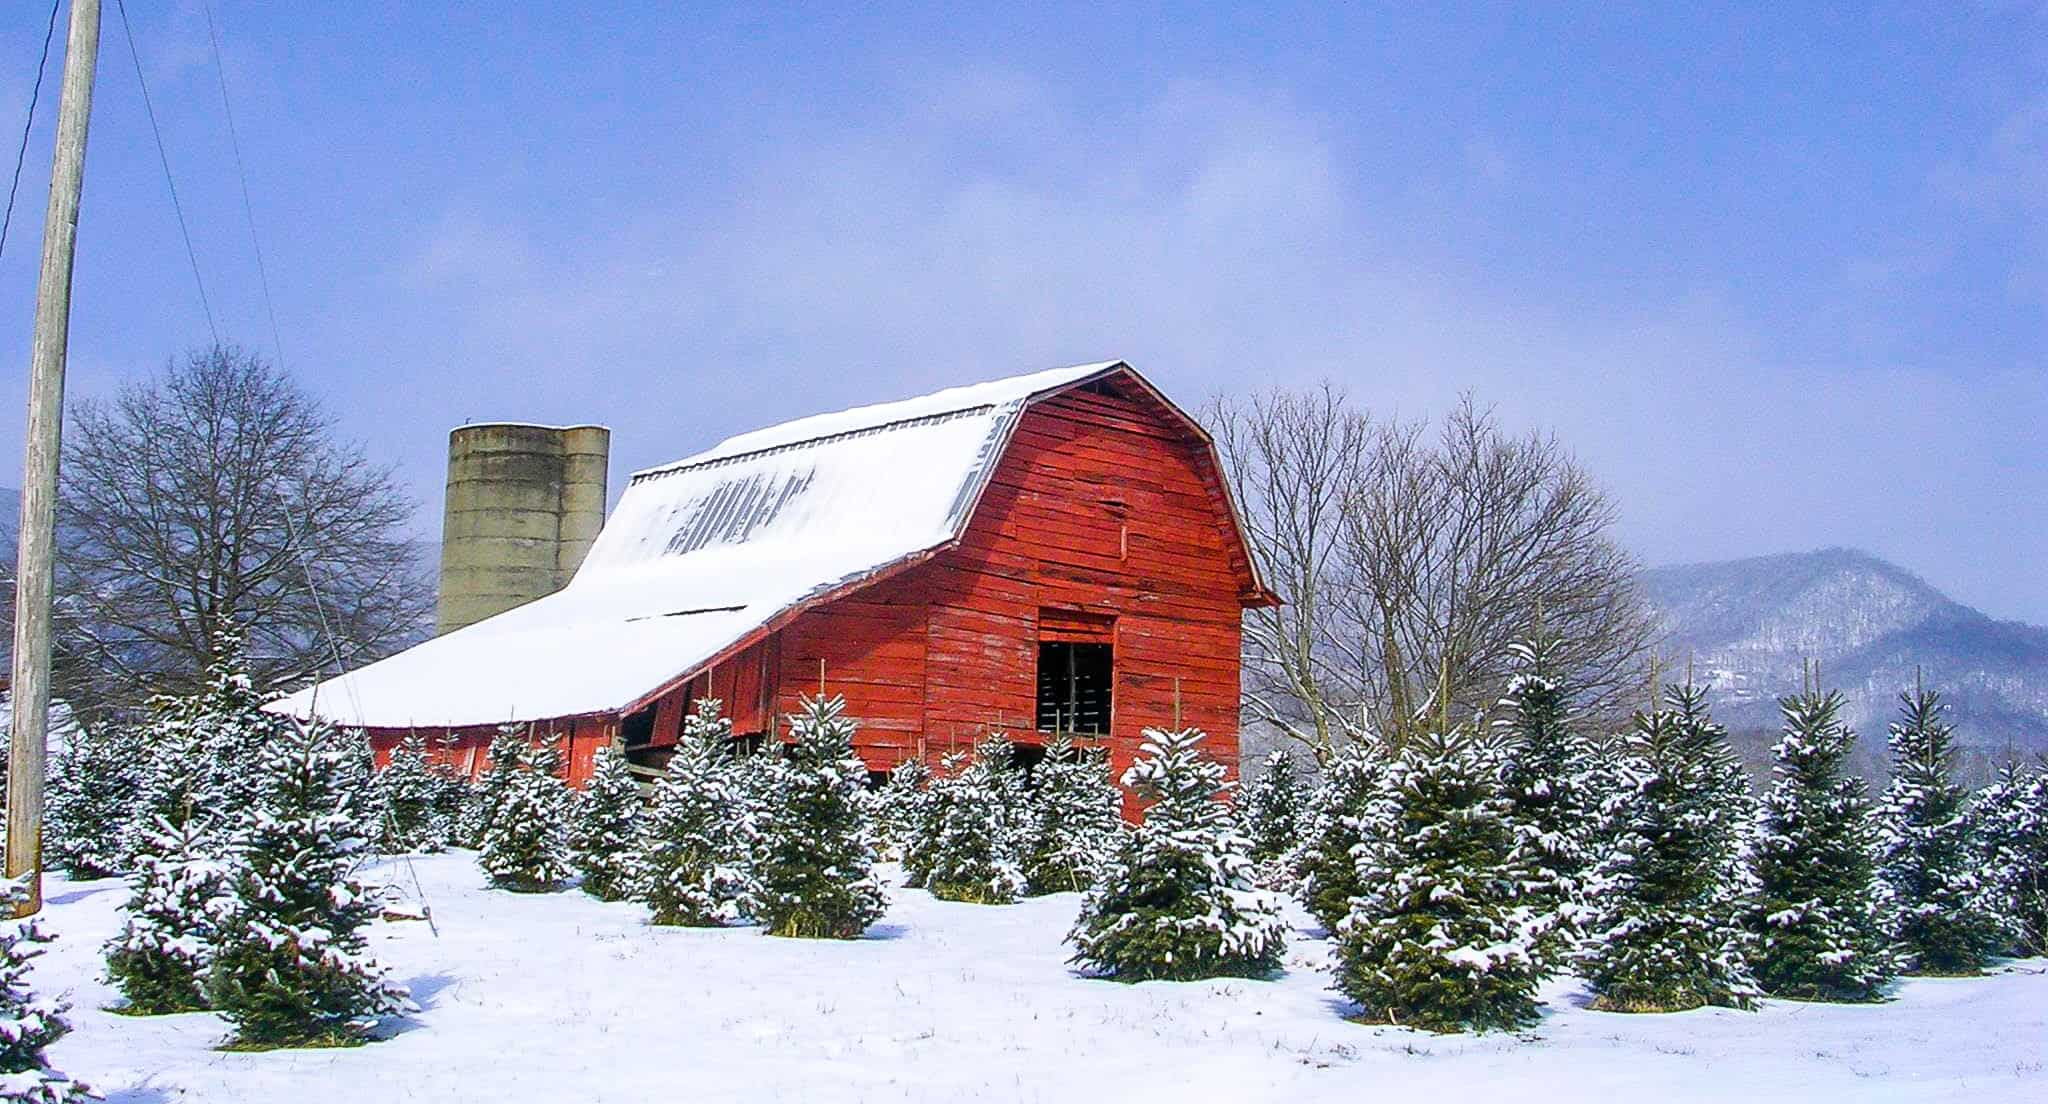 Smoky Mountain Christmas Tree Farm